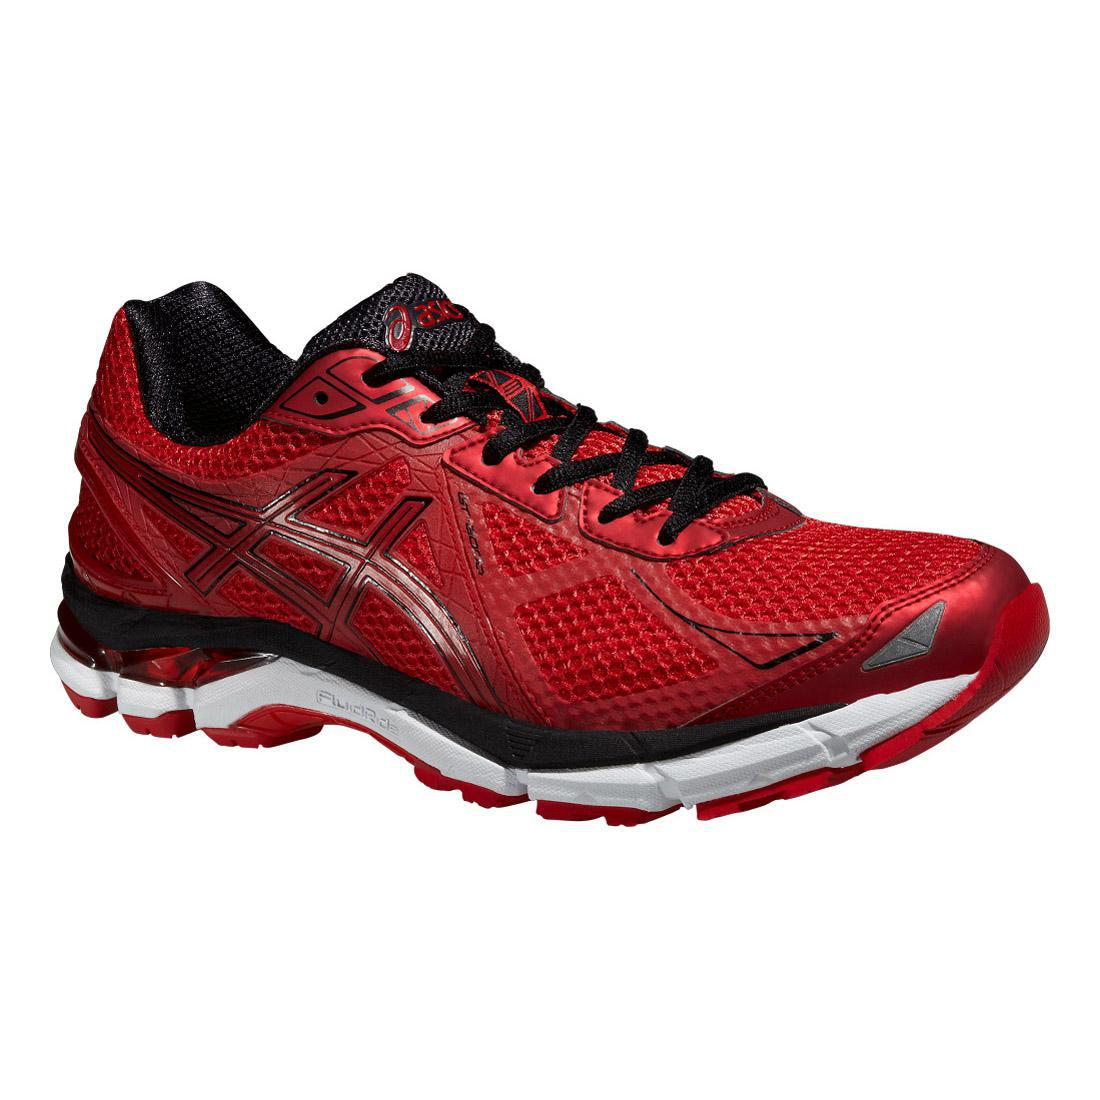 Asics Mens GT-2000 3 Lite-Show Running Shoes - Red